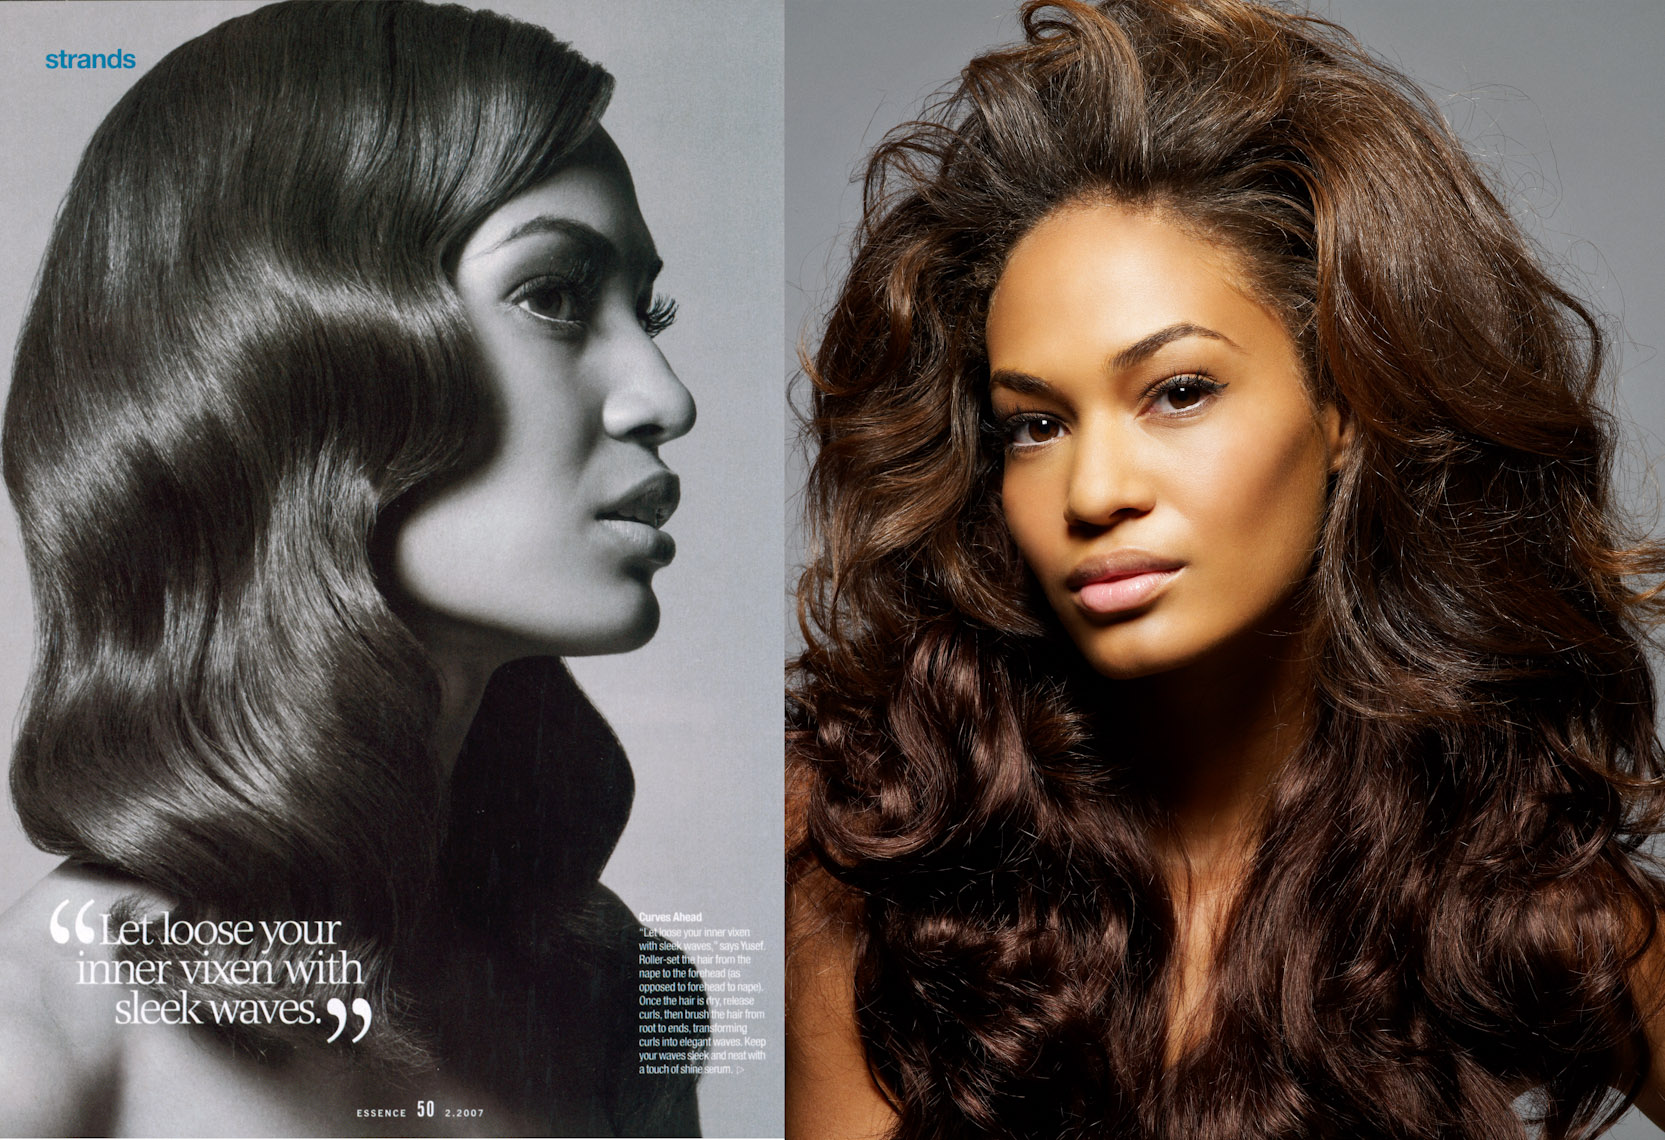 05 Eric Fischer Joan Smalls for Essence